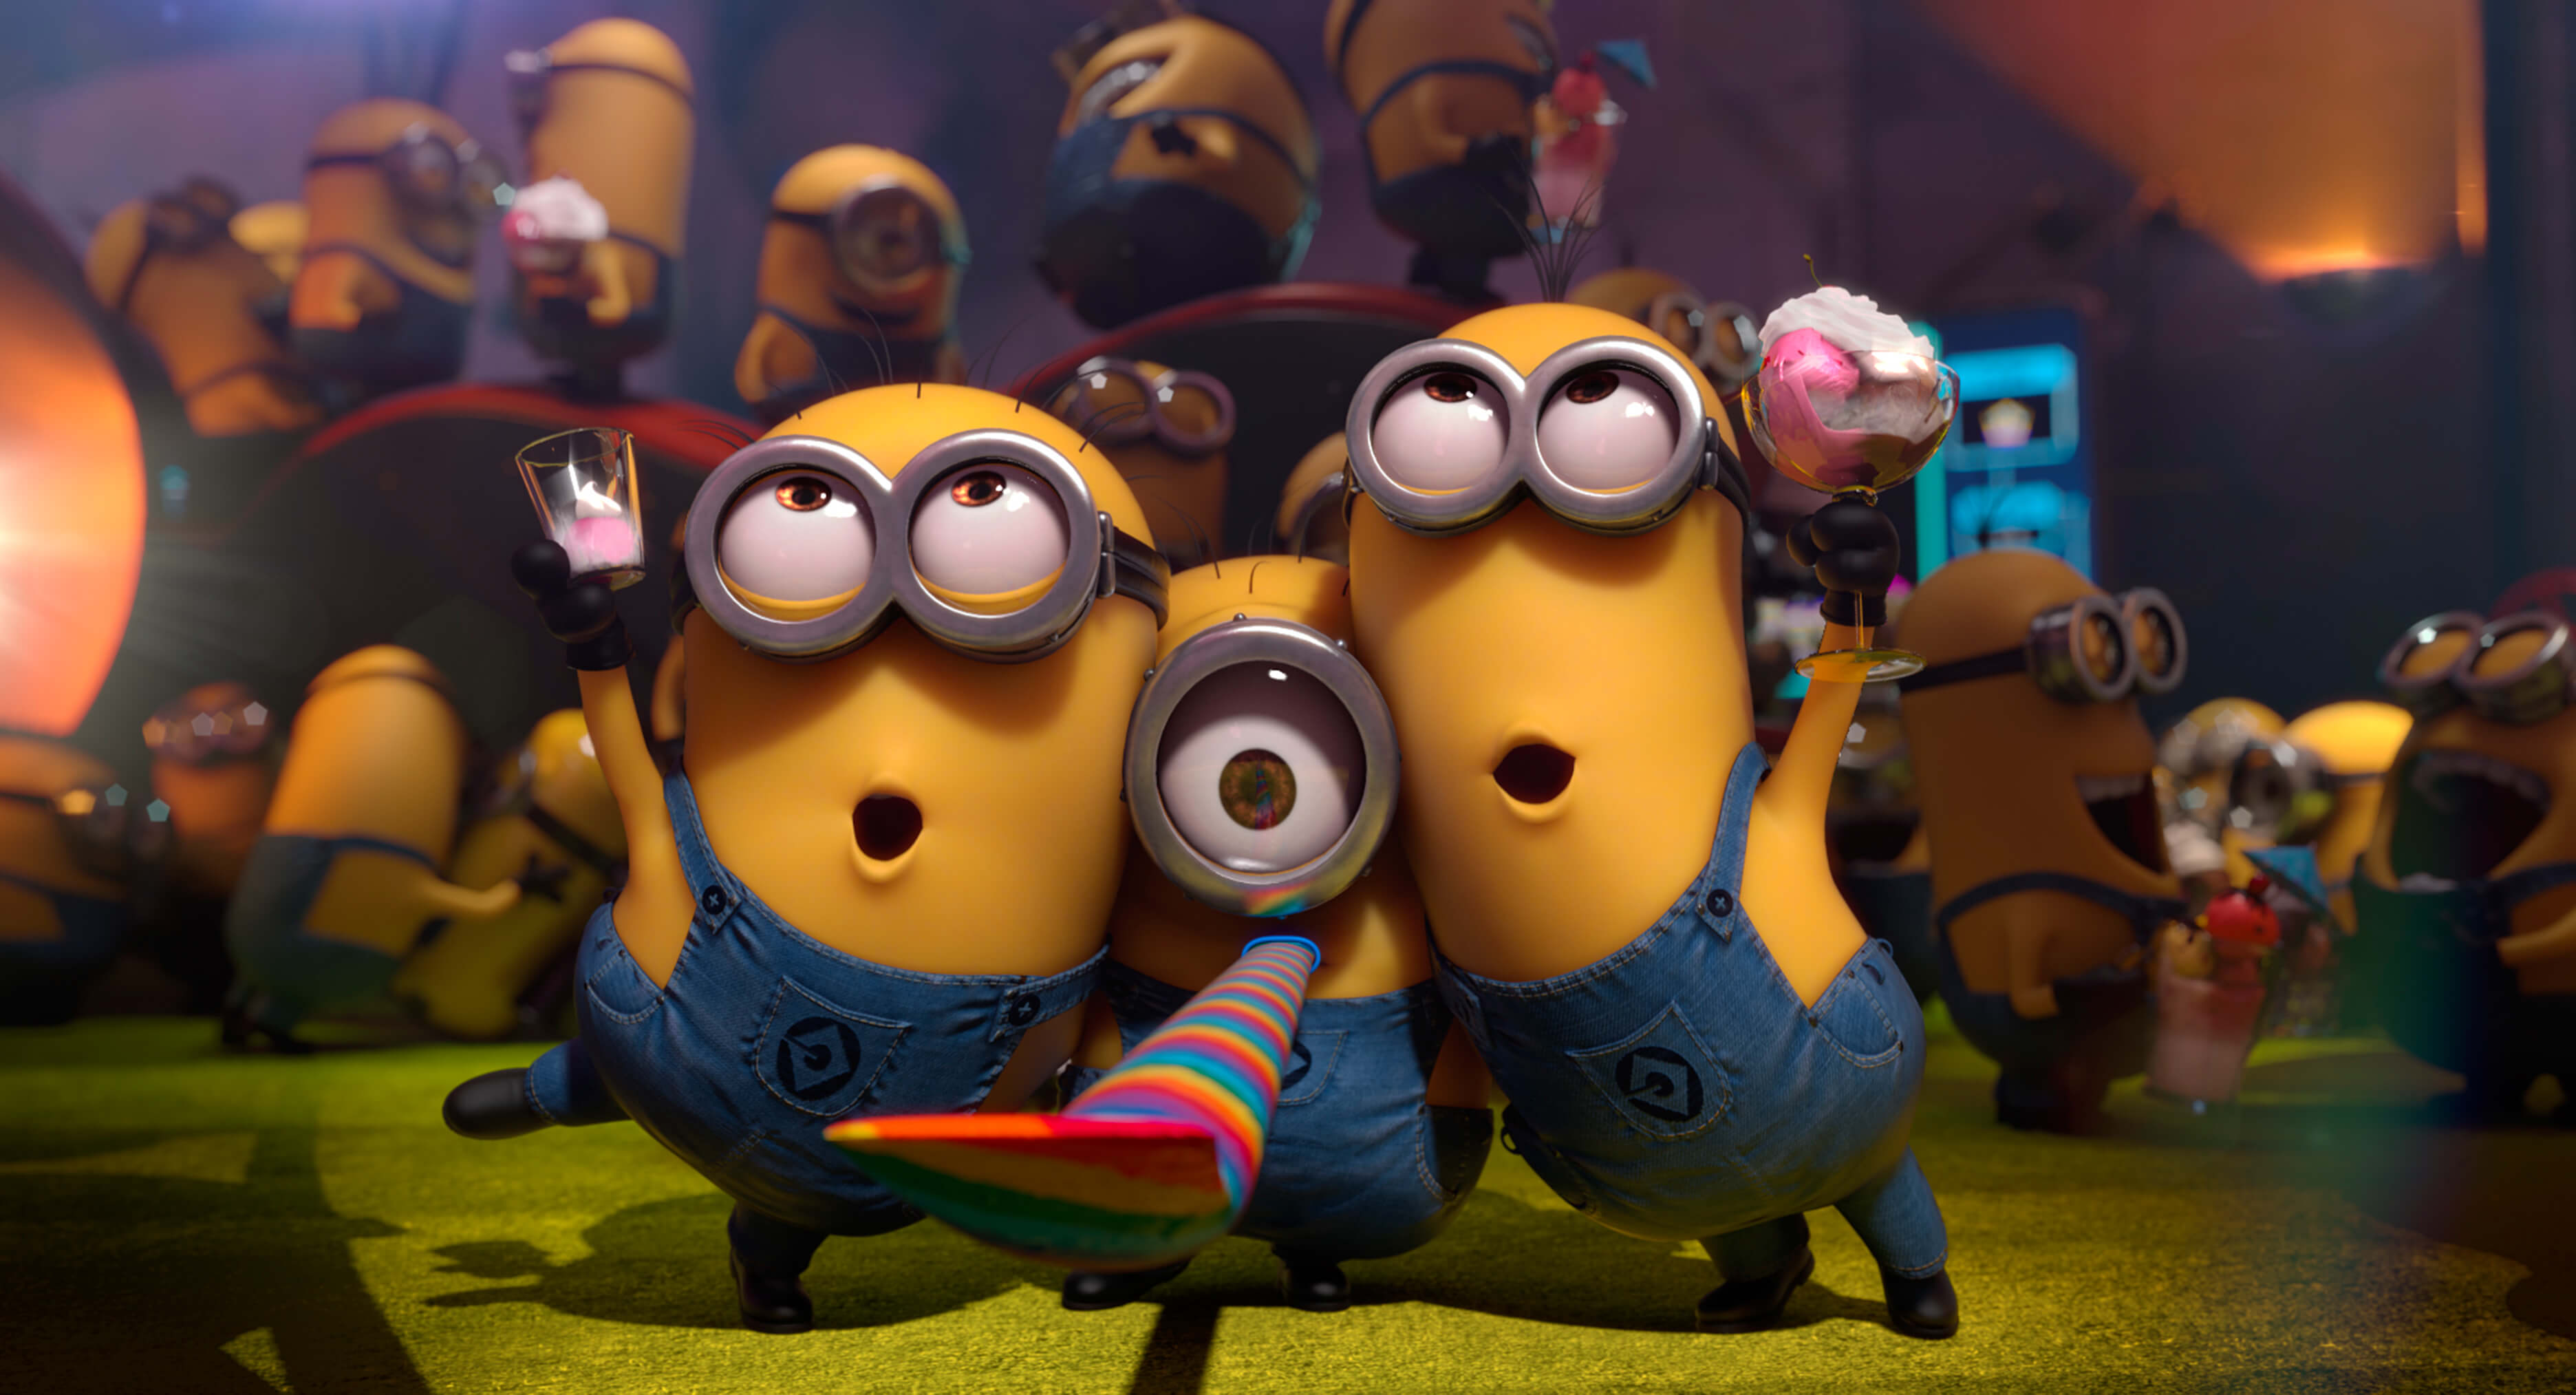 Download Minions Live Wallpaper For Pc Gallery